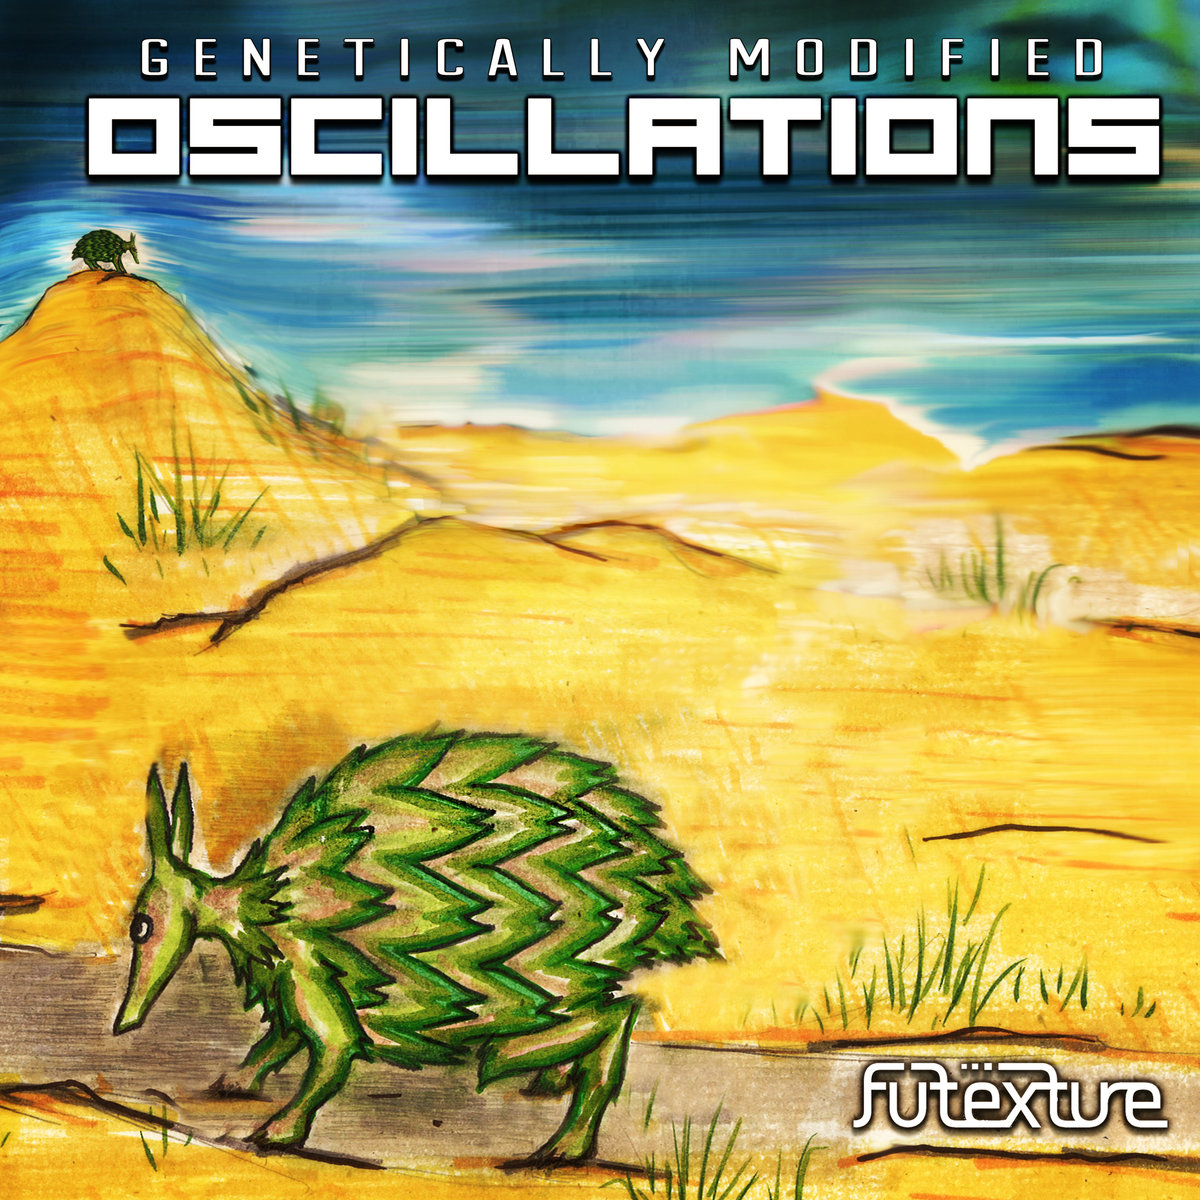 Futexture - Cauliflowl @ 'Genetically Modified Oscillations' album (bass, breaks)